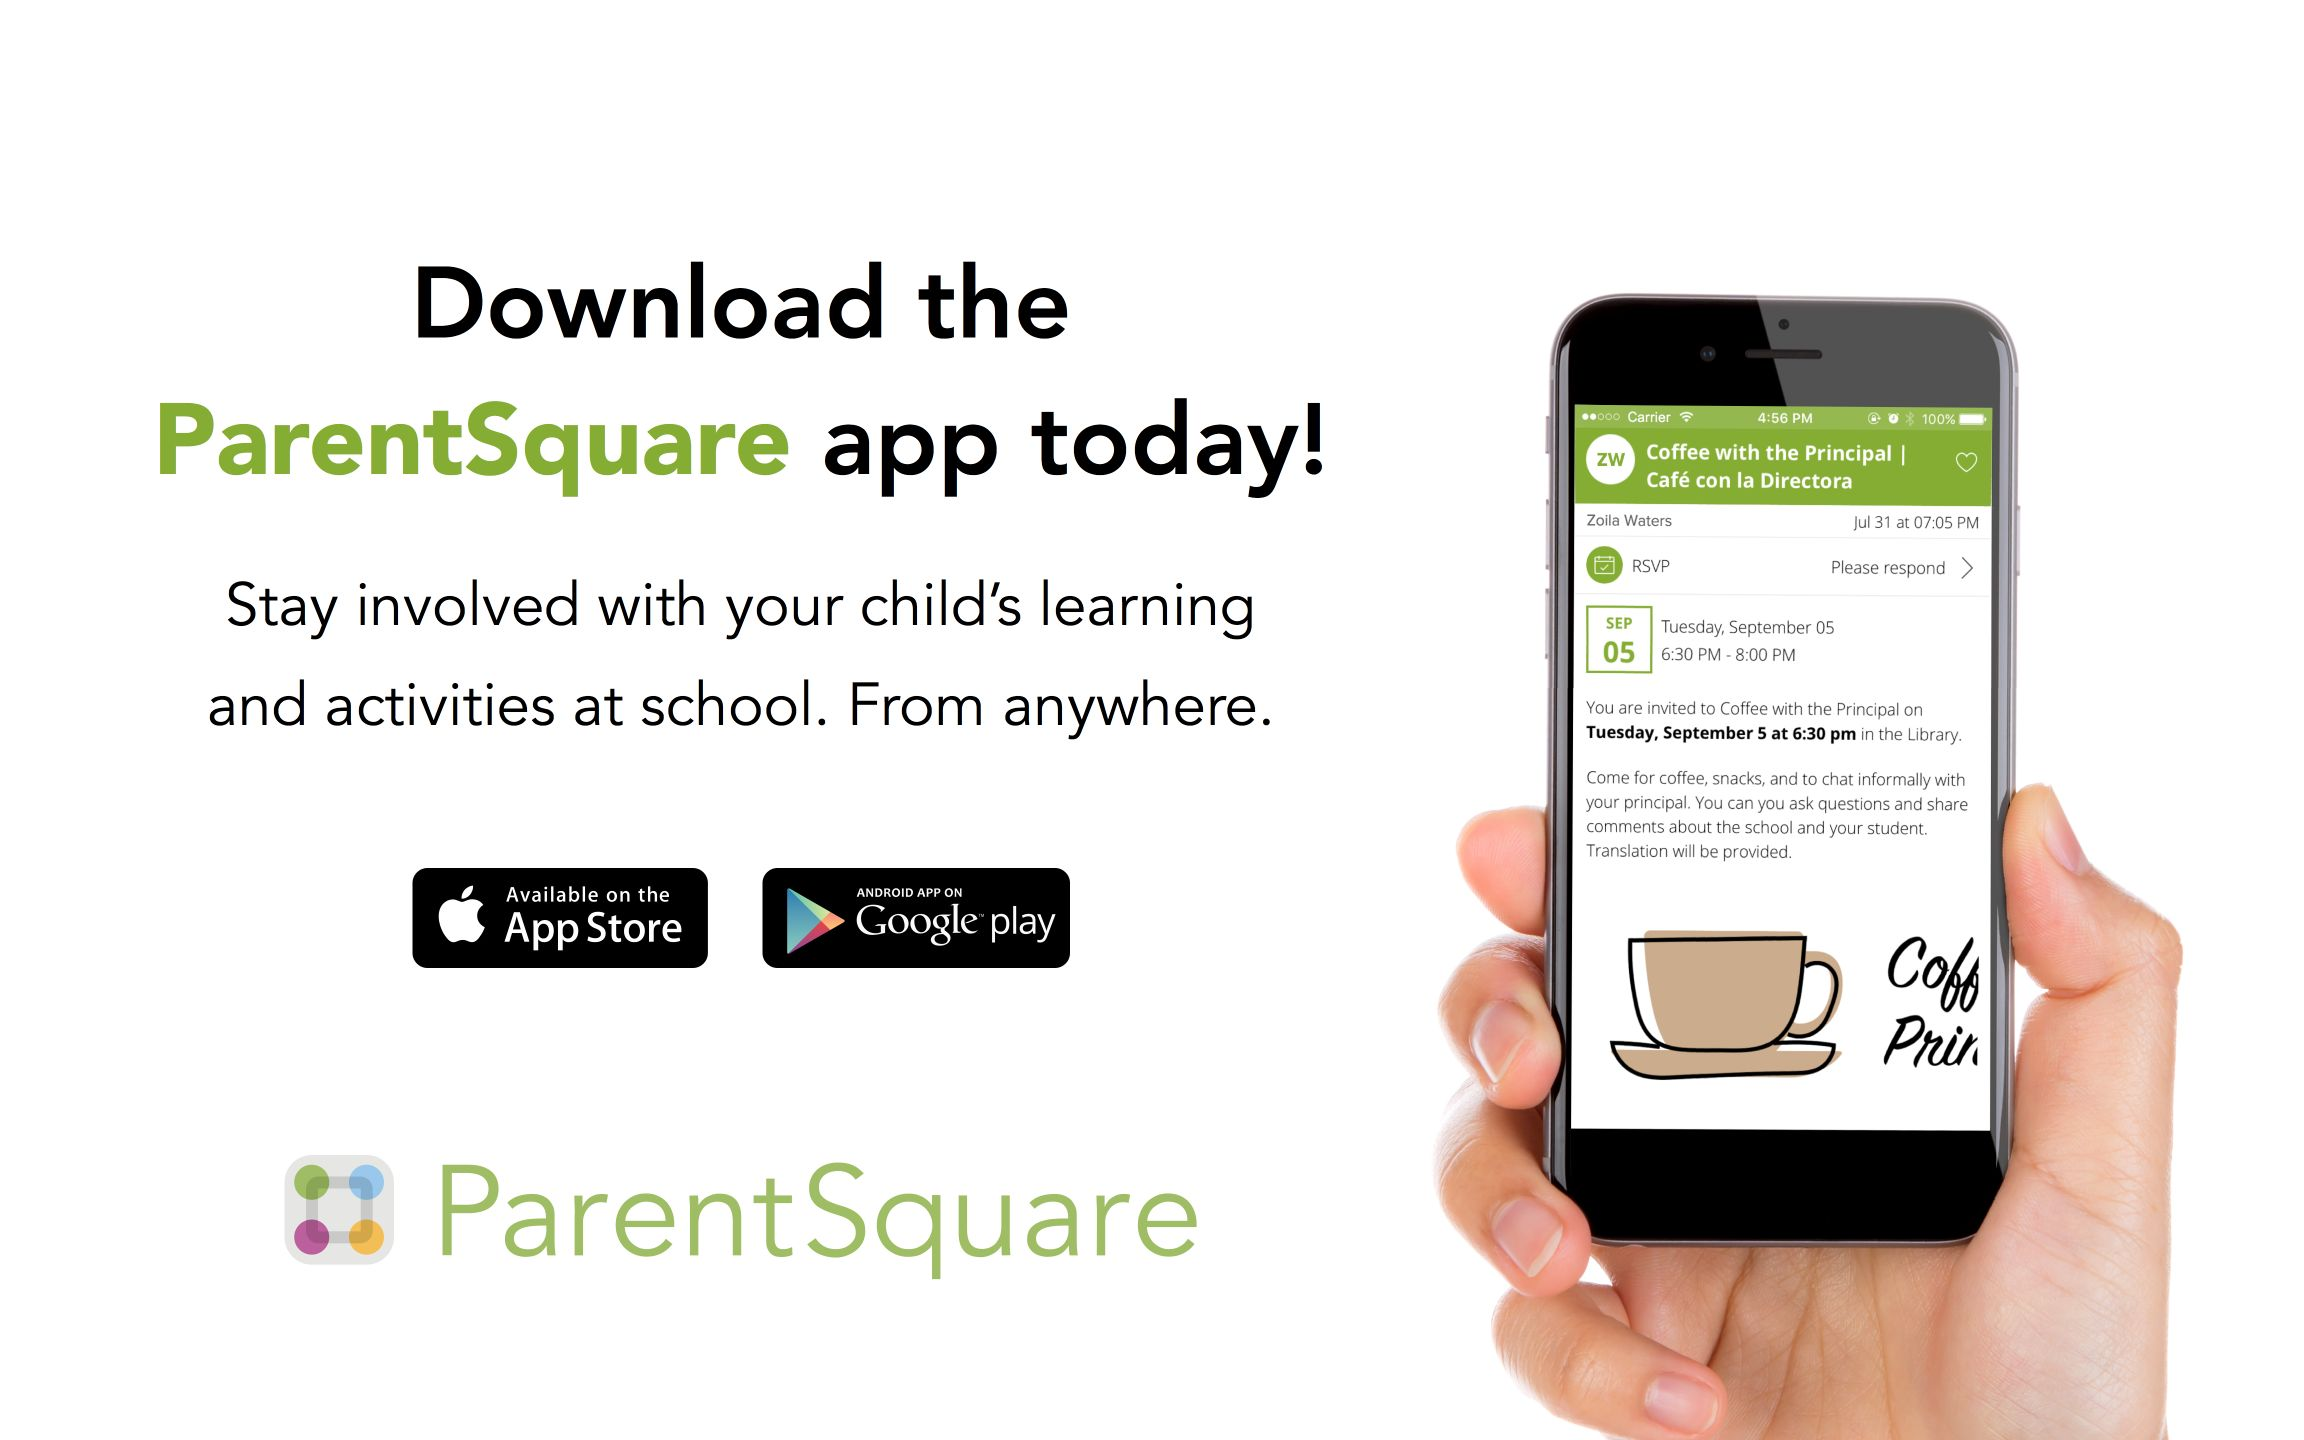 Parent Square - Download the App Today!